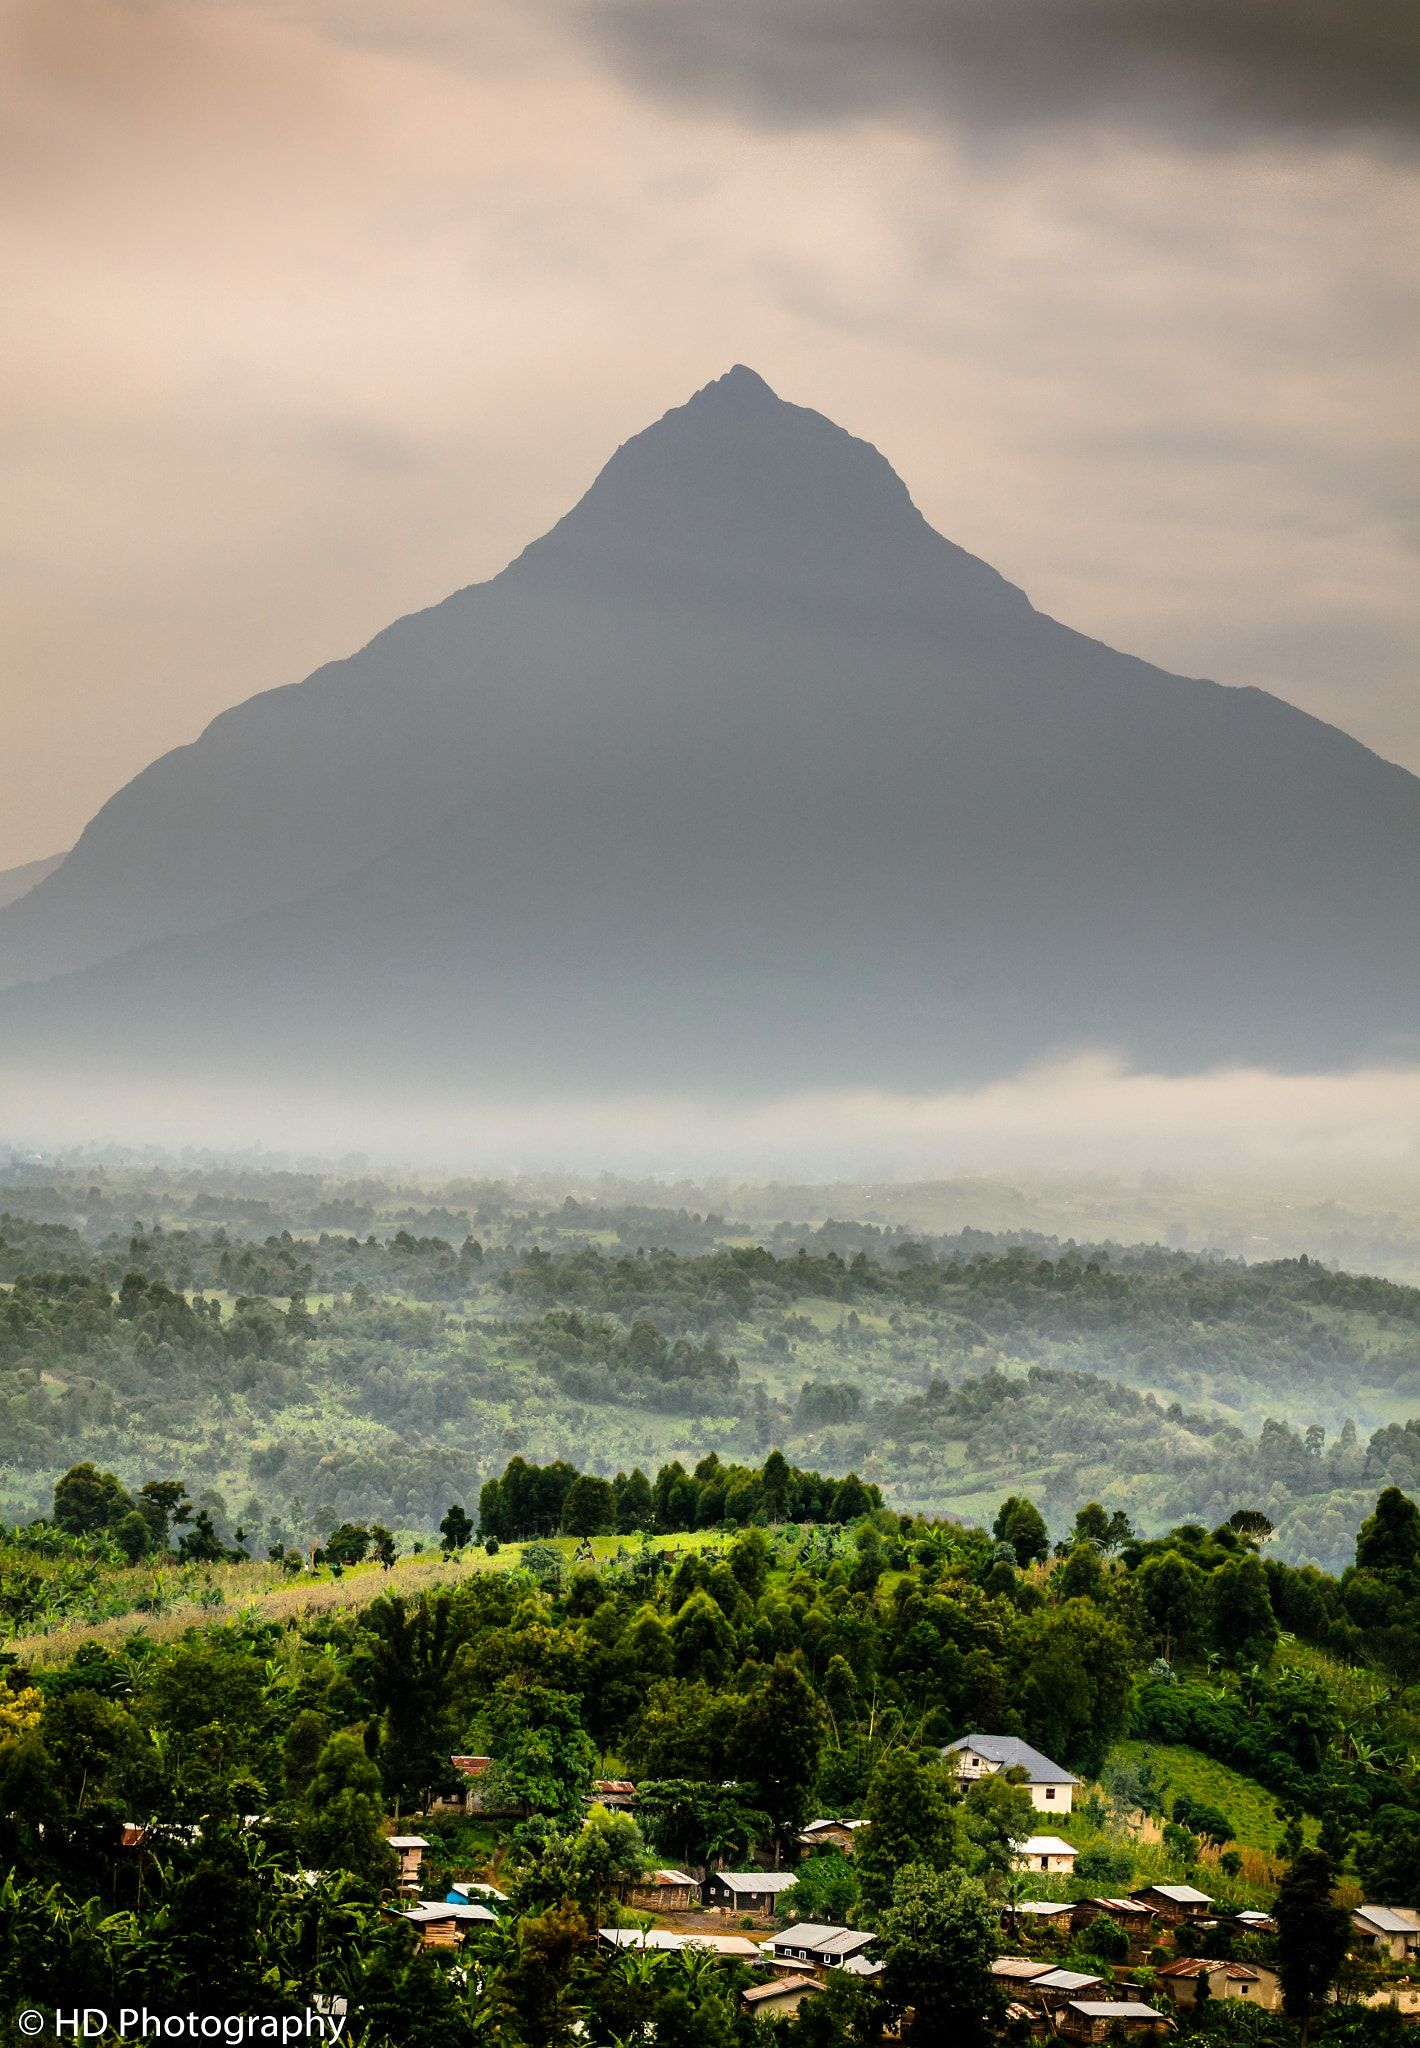 Gorilla Peak The Mikeno Mountain In Virunga National Park Eastern Drc Still Home Of The Enda Africa Travel Democratic Republic Of The Congo National Parks